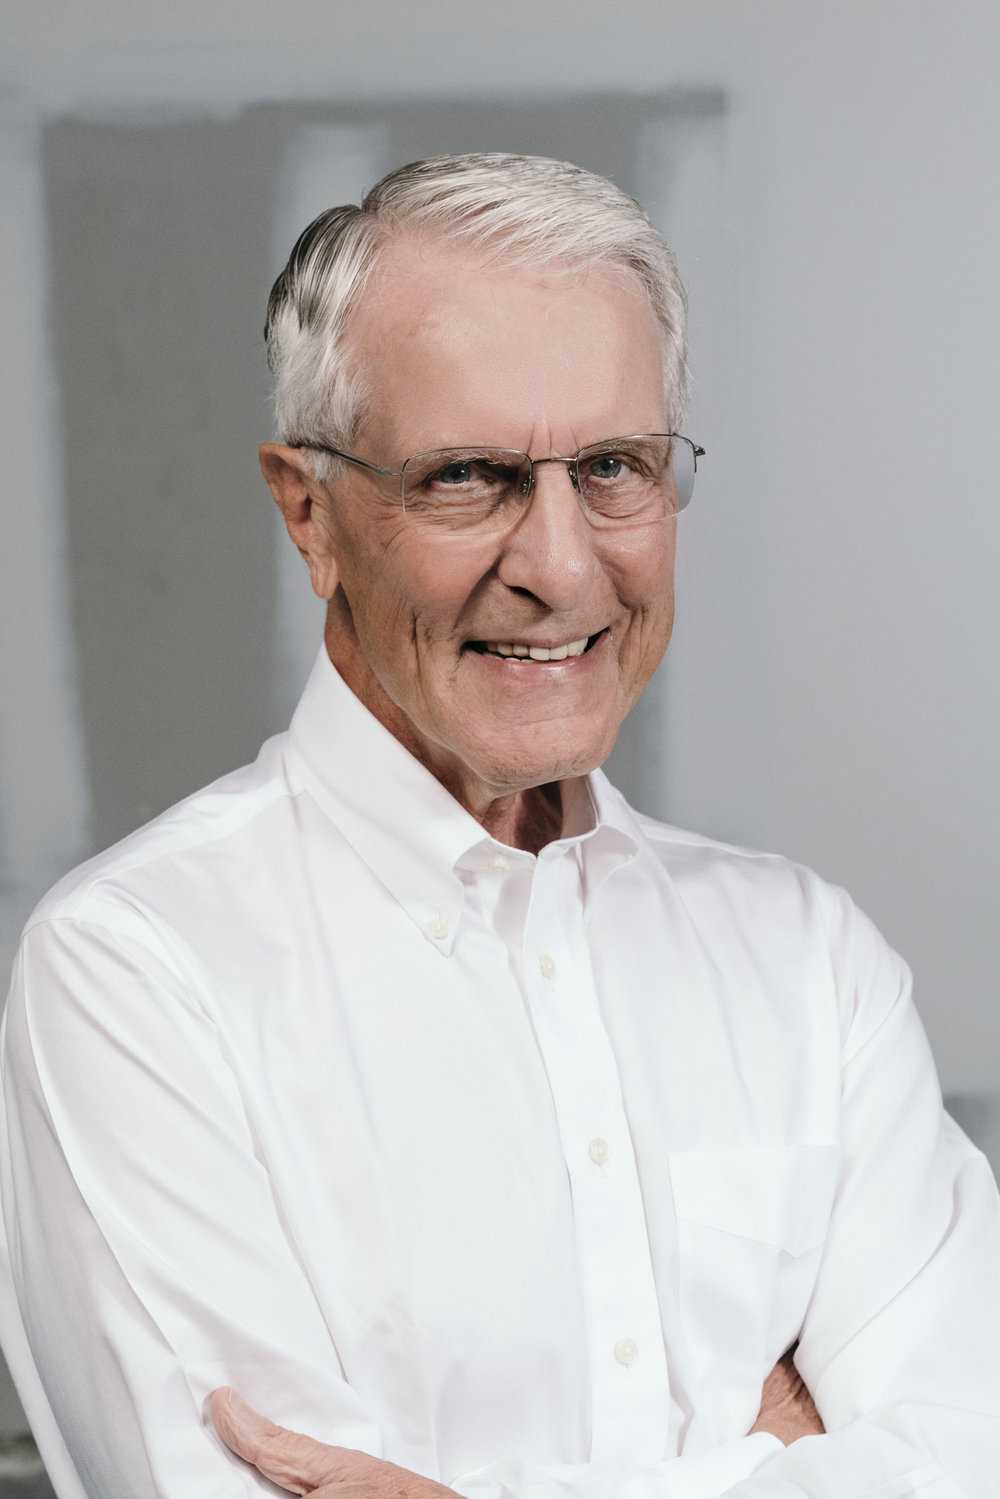 Wayne Smith - Advisory Council MemberFor 50 years, Wayne Smith served as President of the Wayne Smith Company in Washington, D.C. where he established and managed major trade associations in the fields of education, transportation and health.